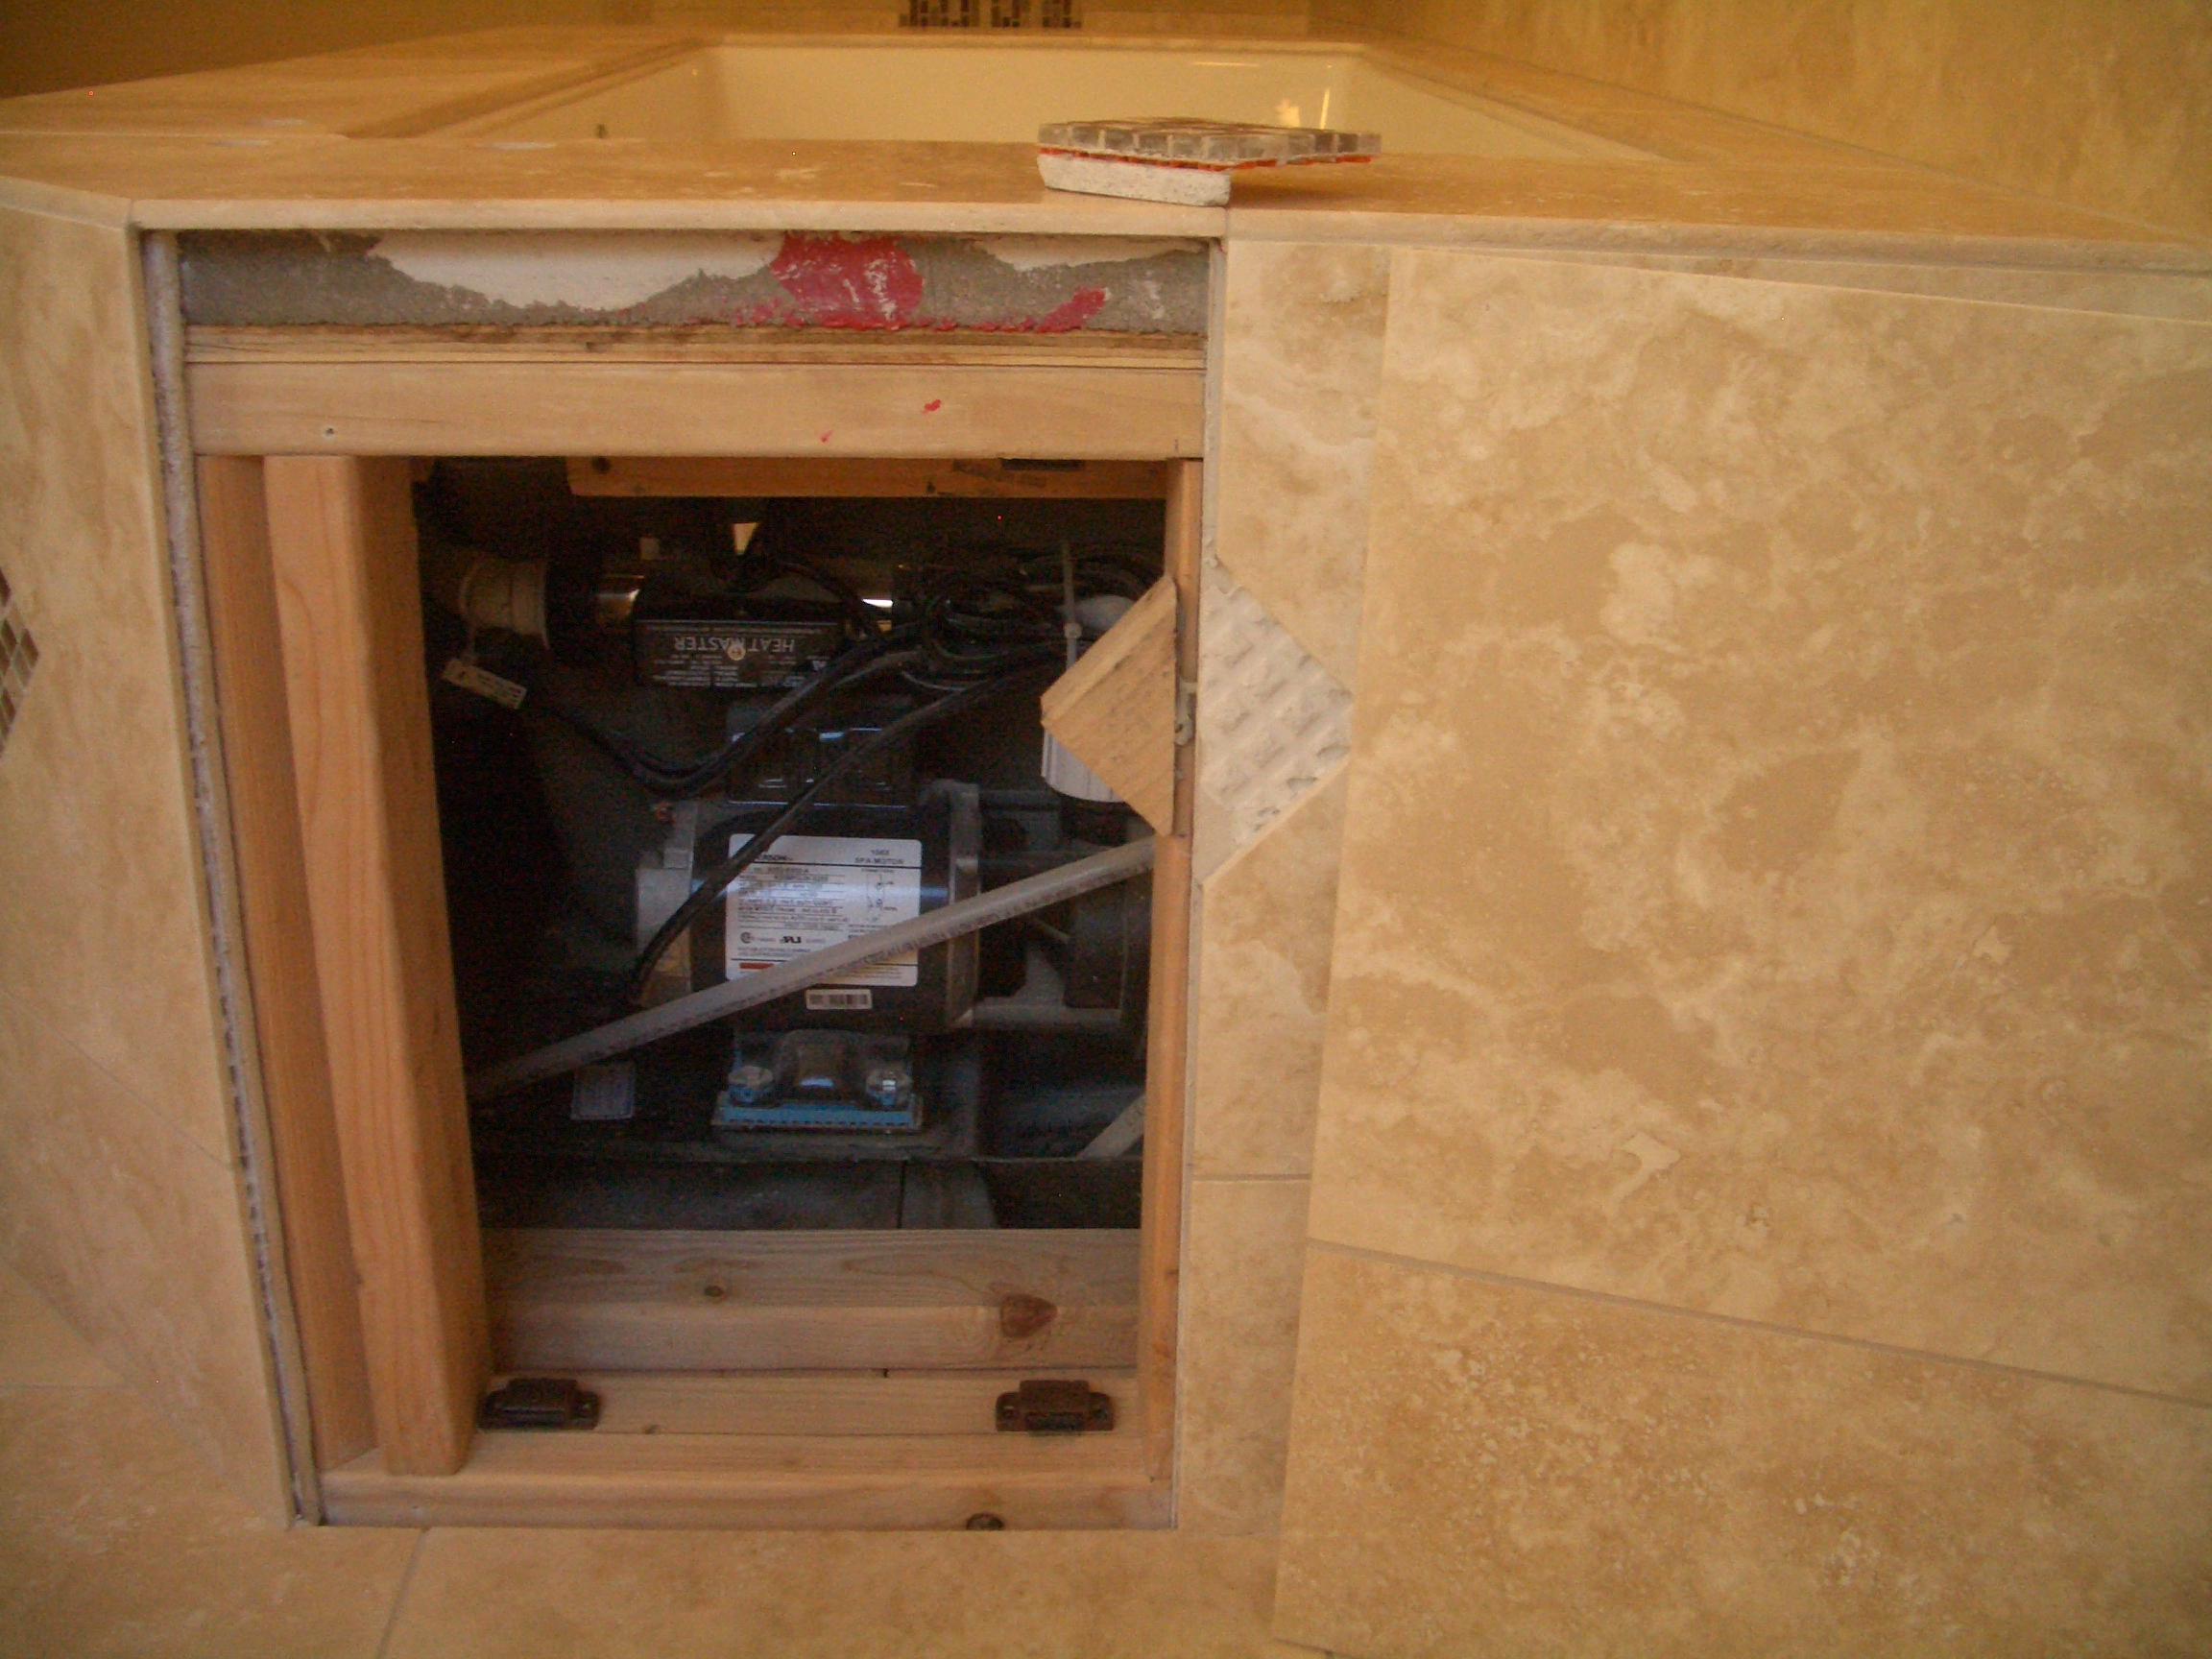 Magnetic Access Panels In Tile Installations Part Ii